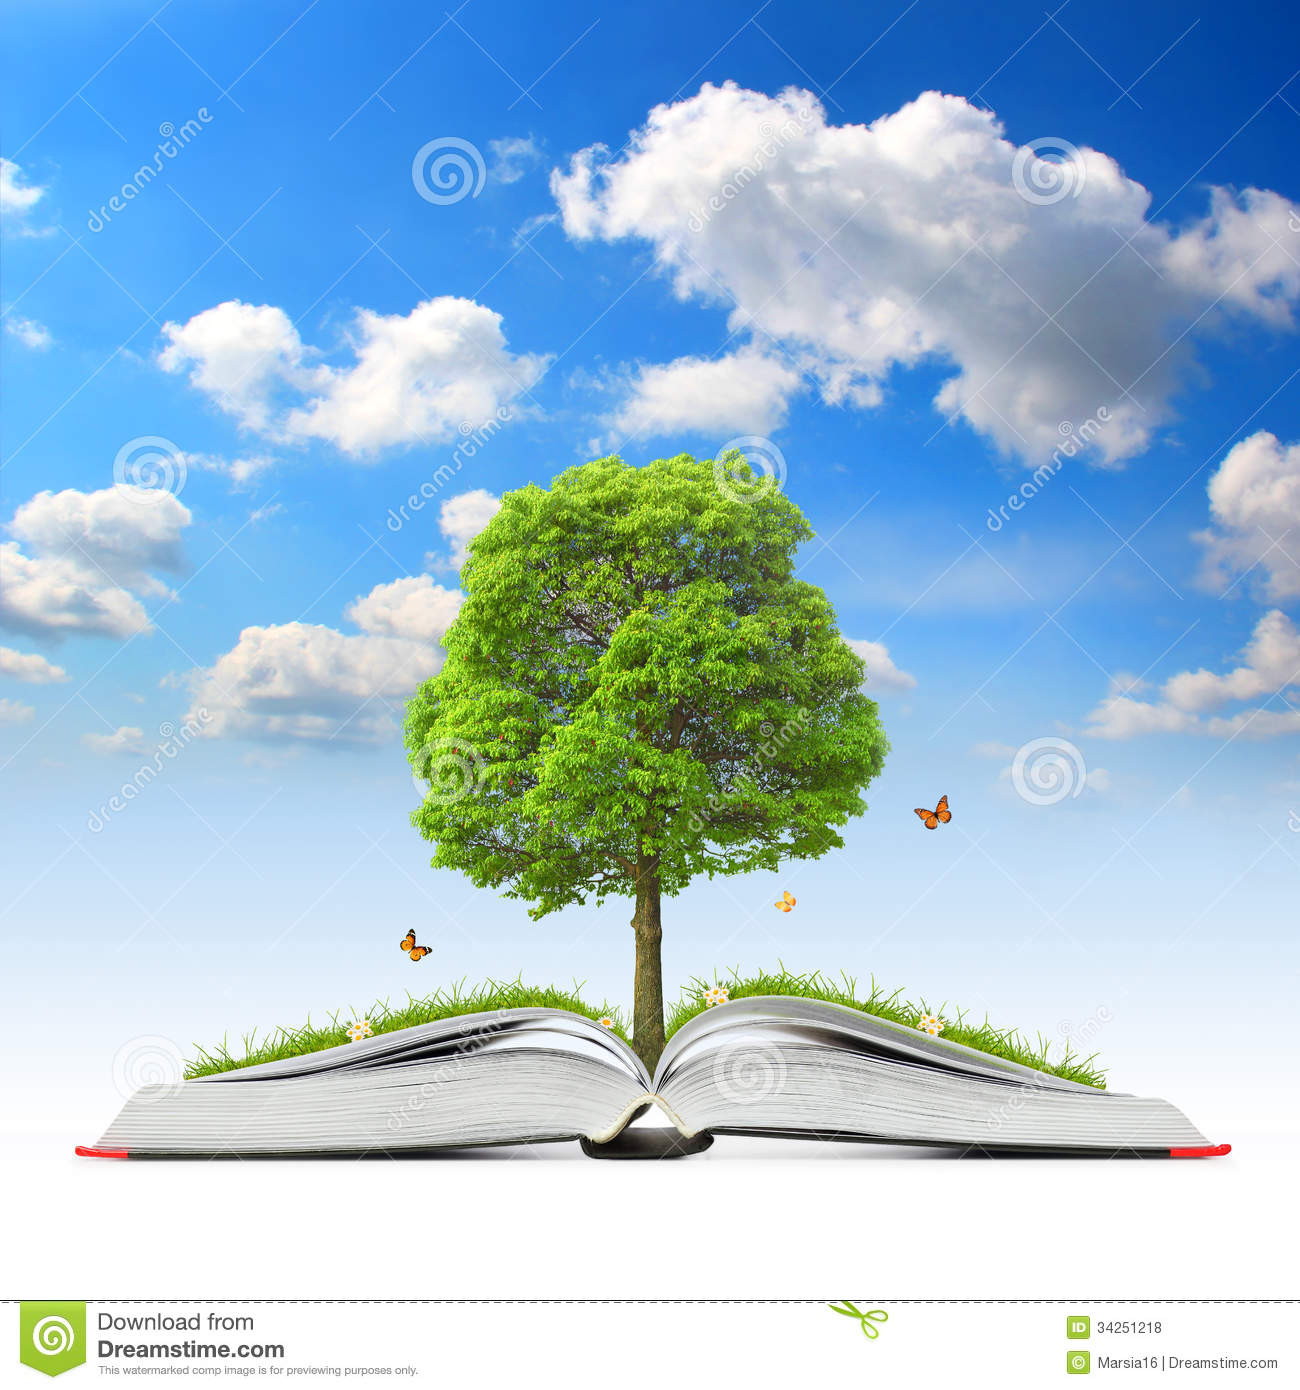 Newborn Baby Girl Wallpaper Open Book With Tree And Grass Royalty Free Stock Photos